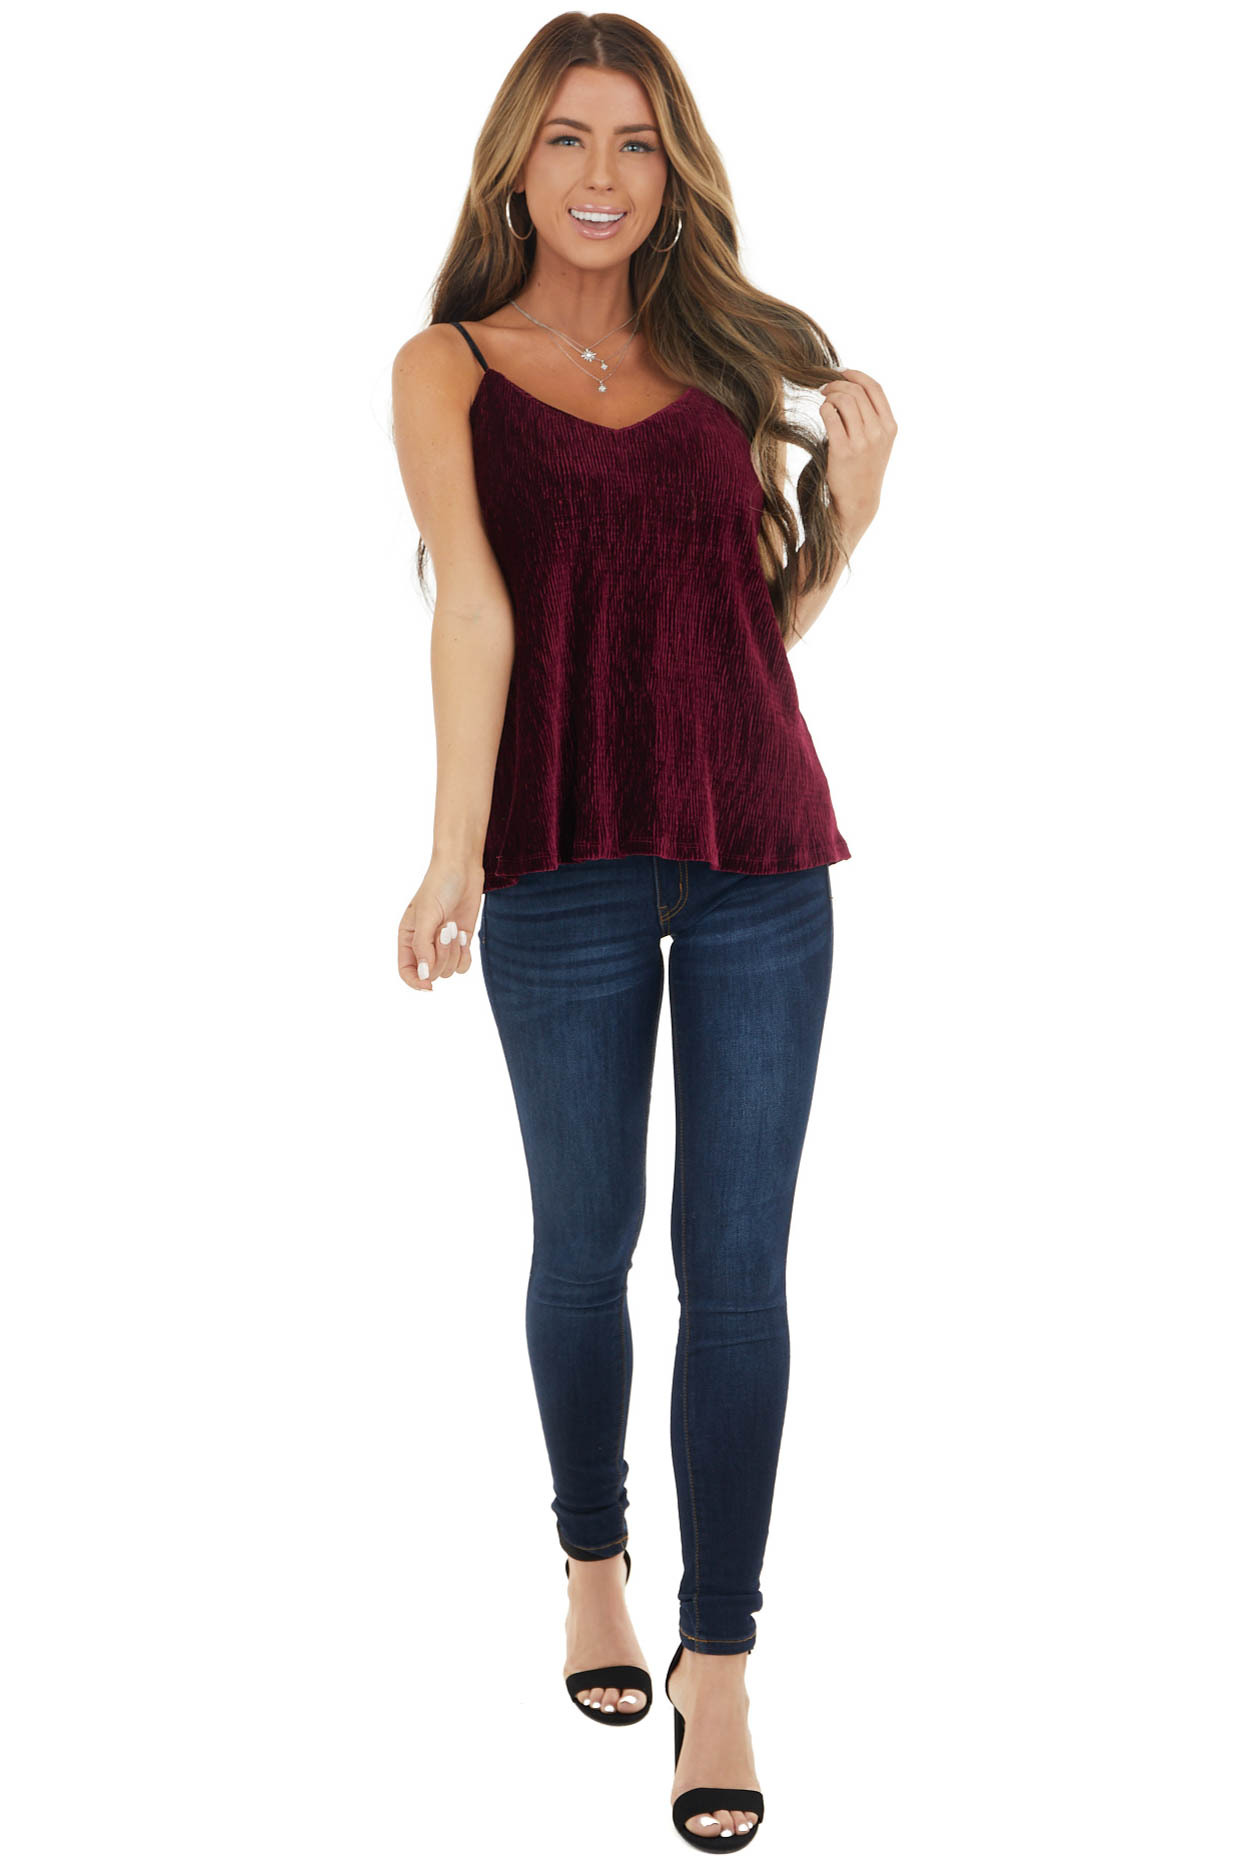 Wine Ribbed Knit Velvet Camisole with Adjustable Straps